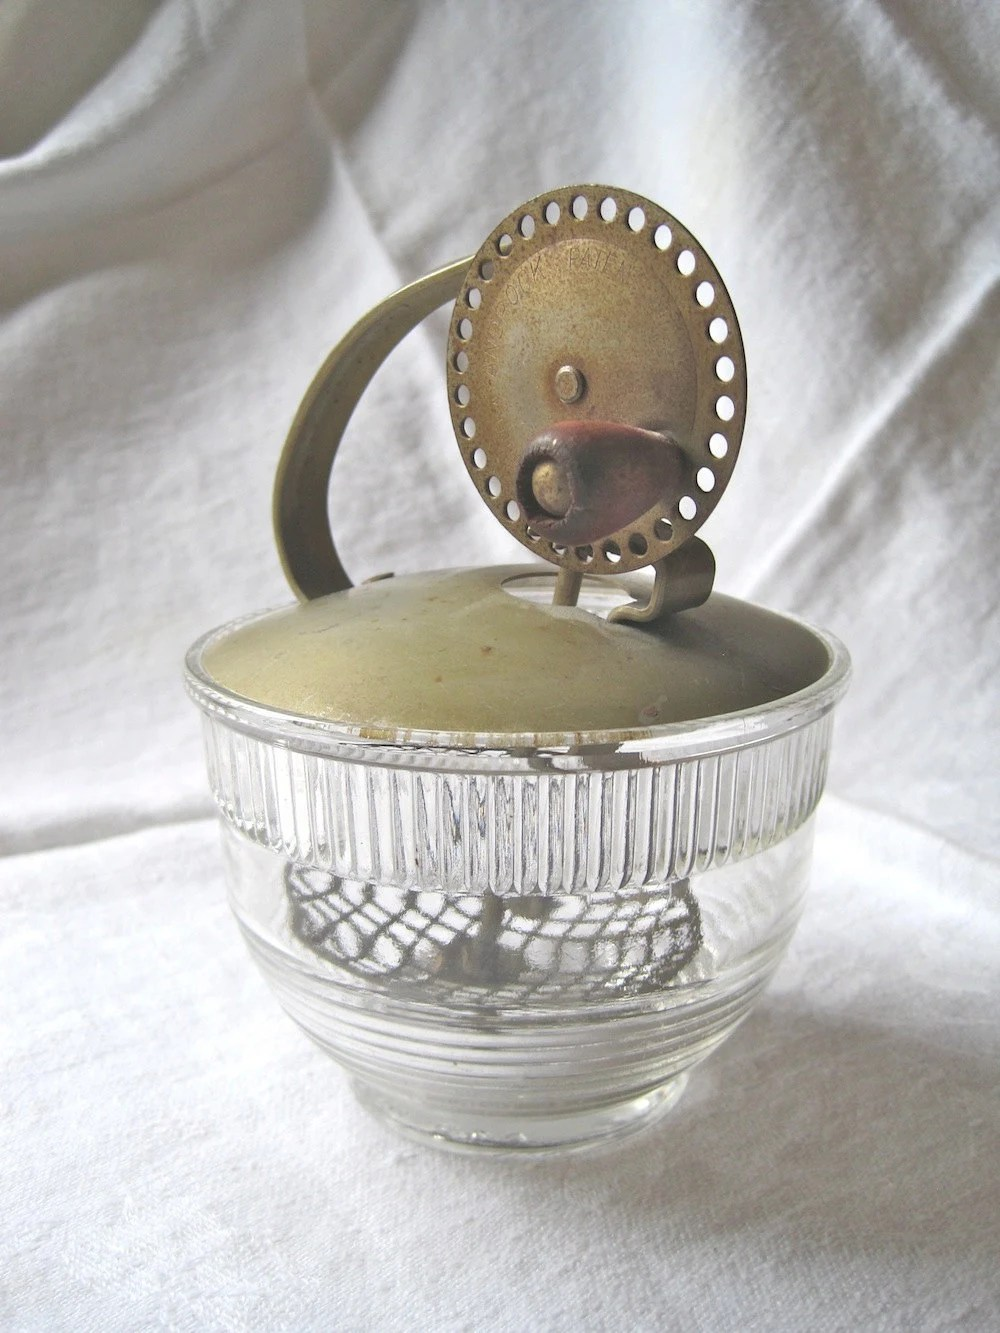 Androck Vintage Egg or Mayo Beater with Glass Base